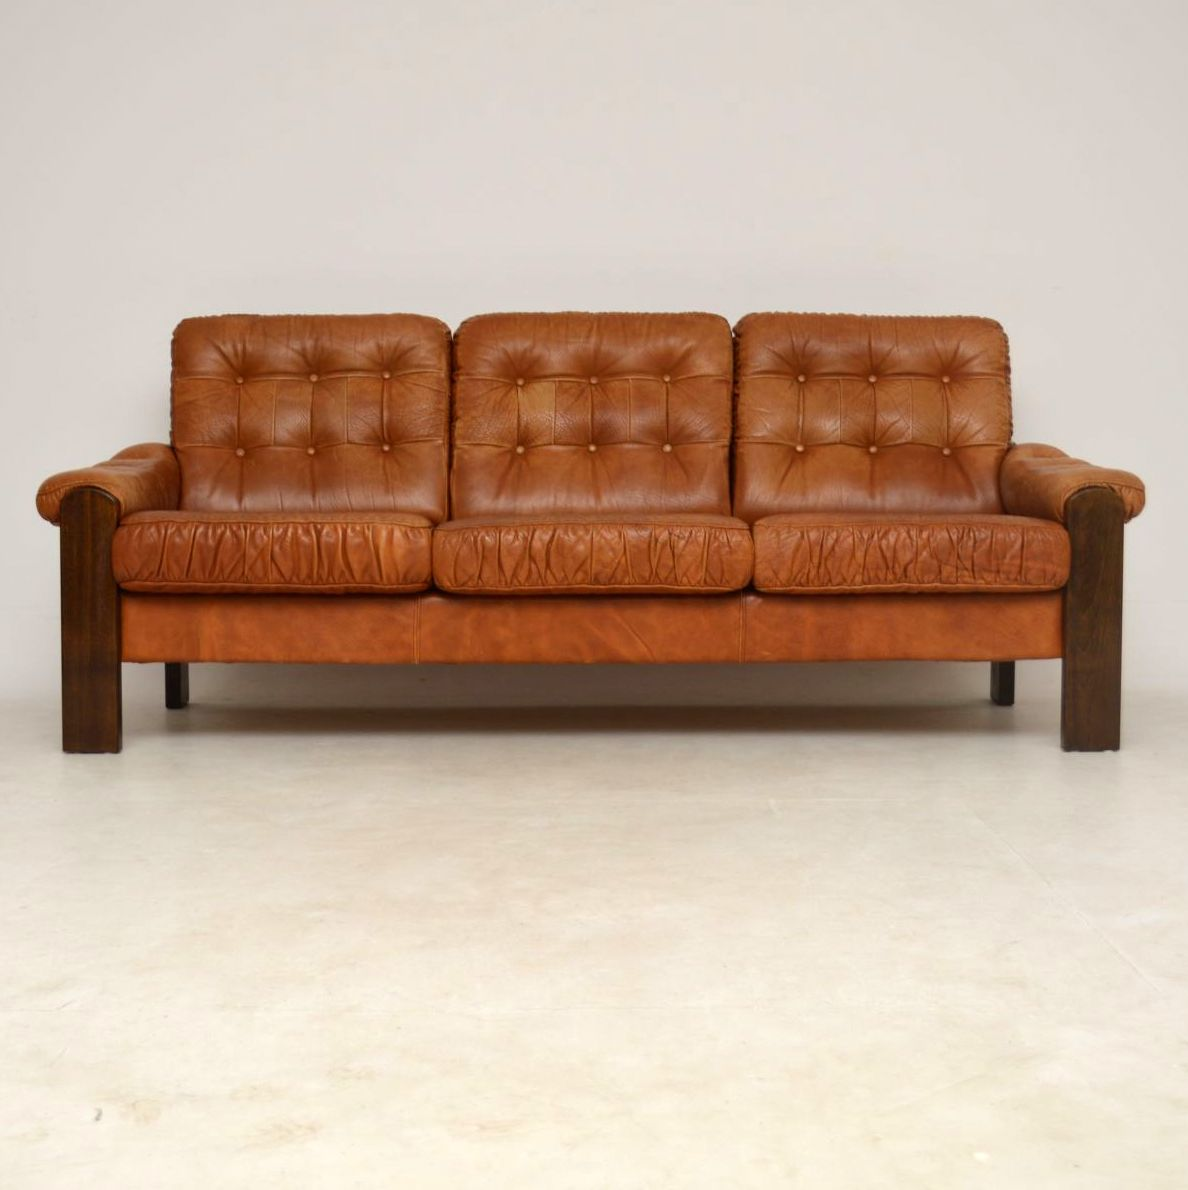 Second Hand Leather Sofas Gosport: Leather Sofa Second Hand Second Hand Leather Chairs Home